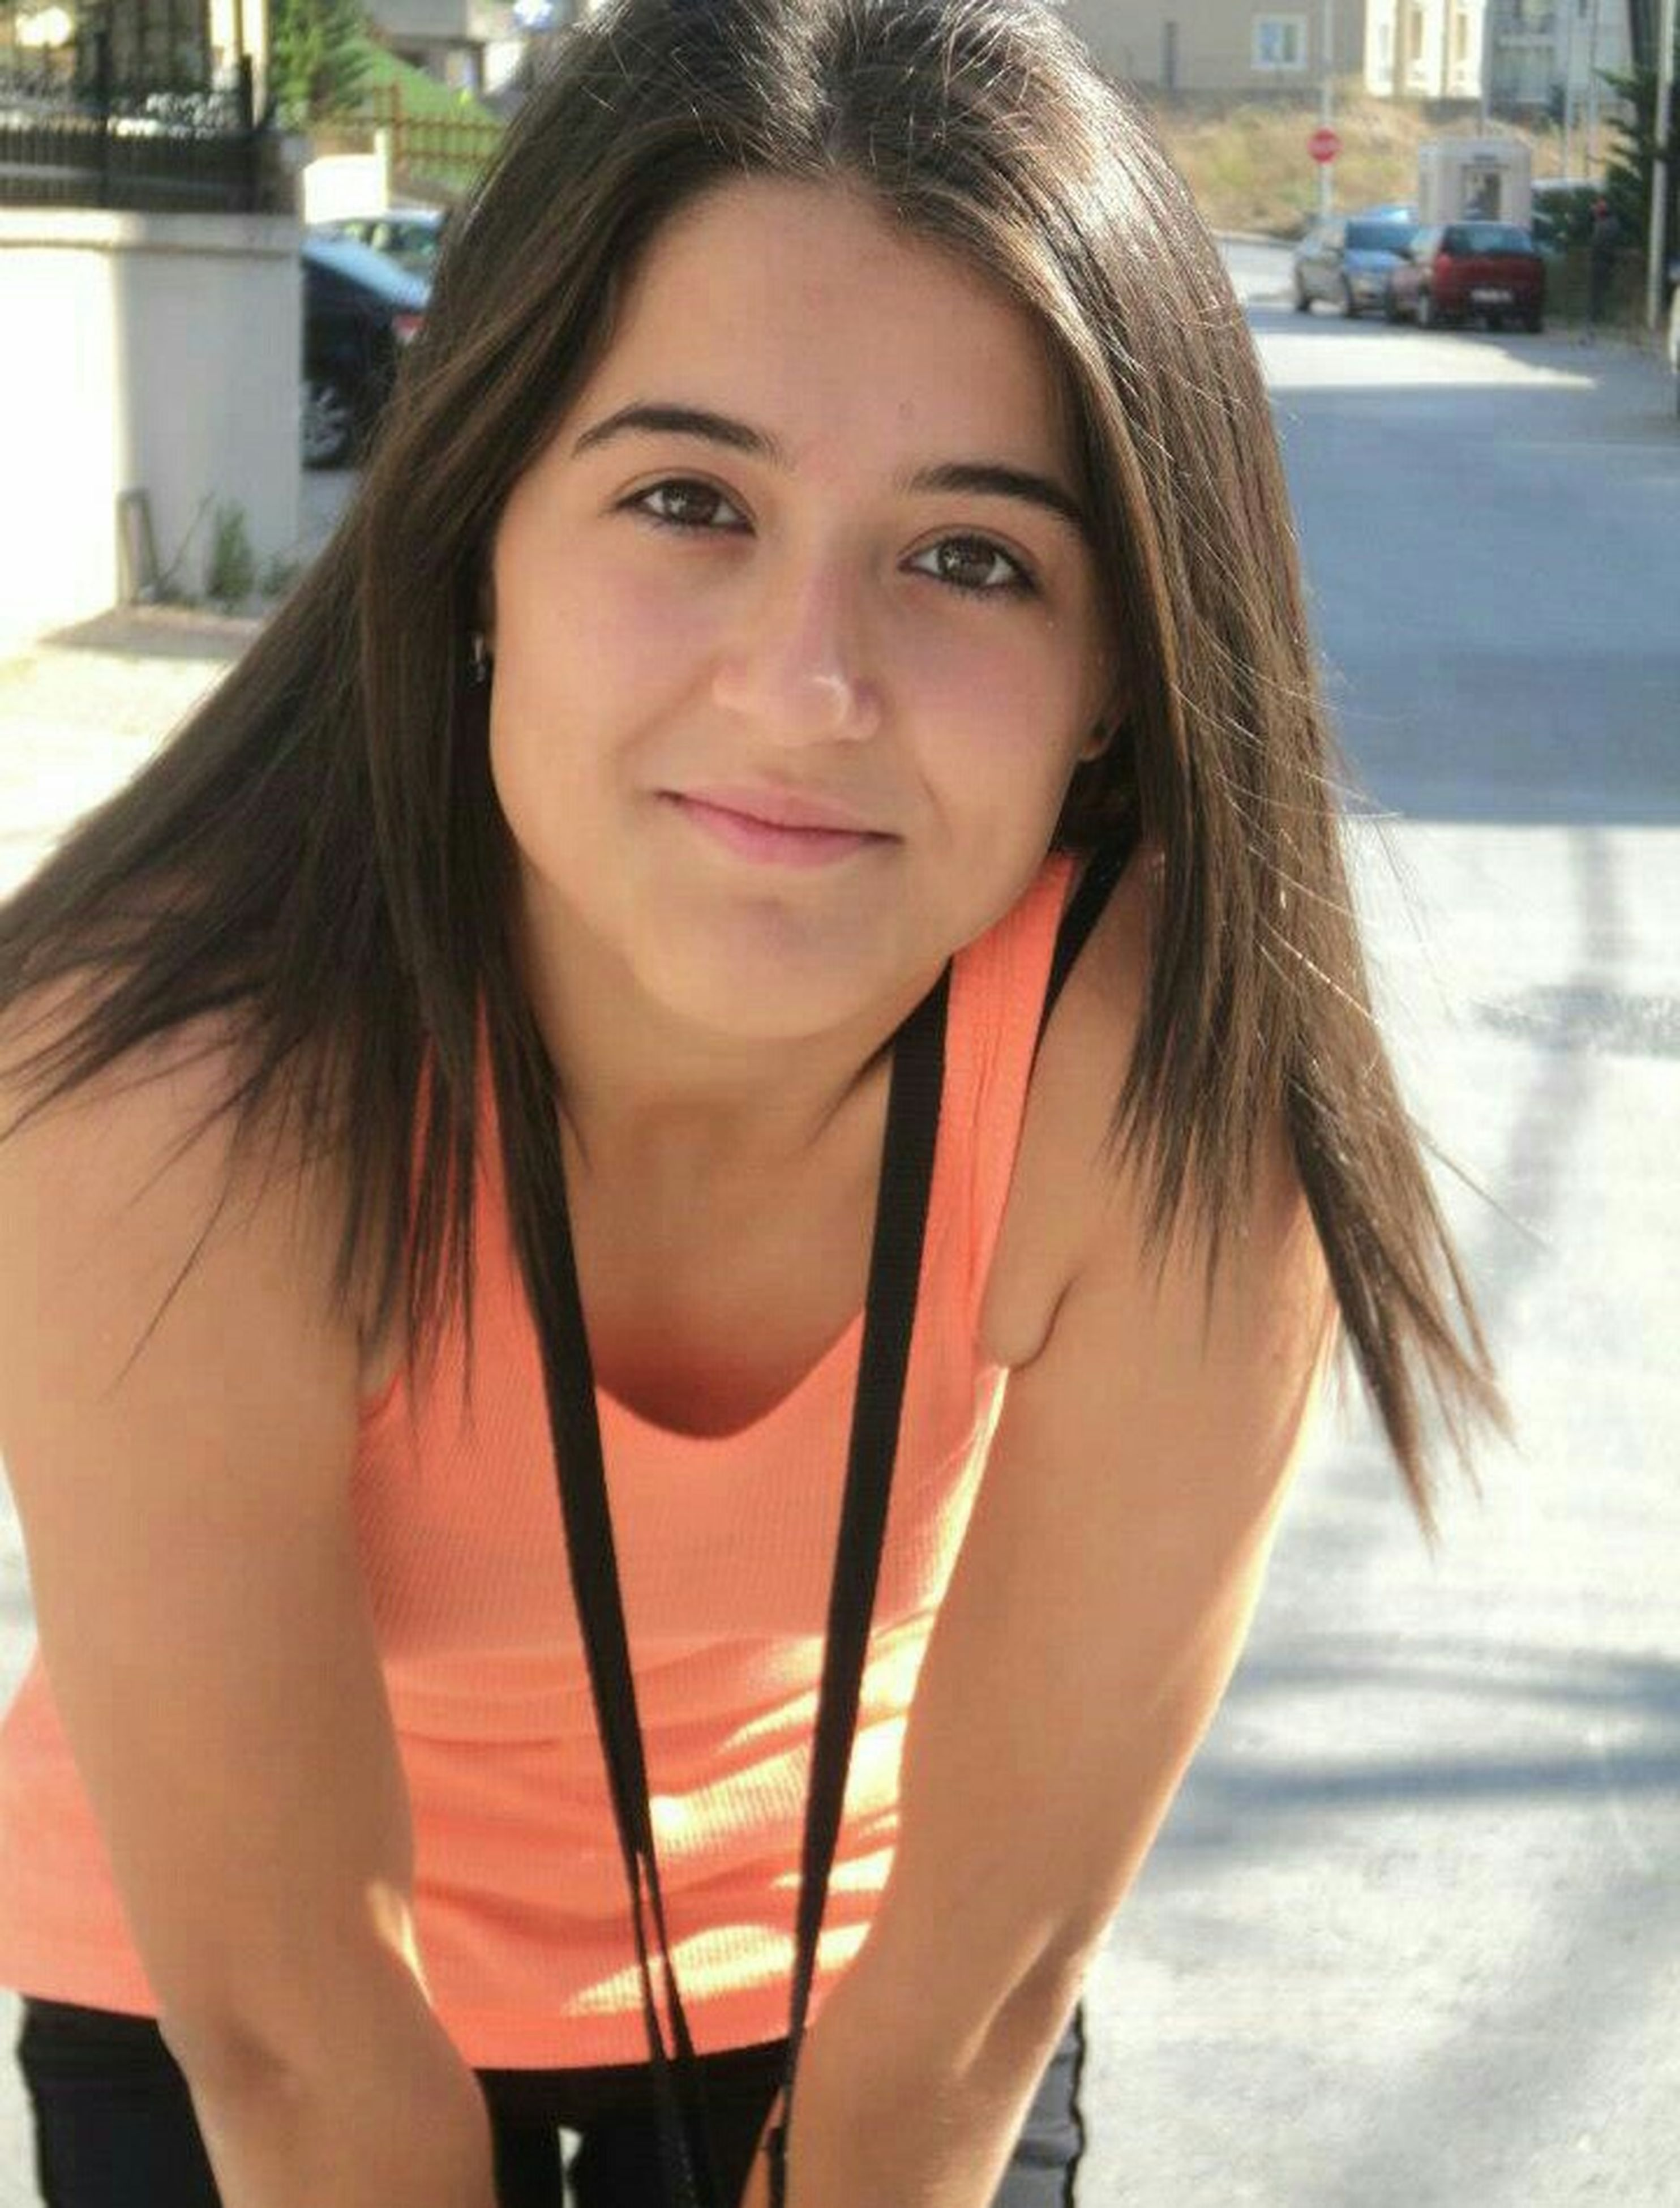 portrait, person, looking at camera, young women, young adult, lifestyles, long hair, smiling, front view, leisure activity, casual clothing, focus on foreground, happiness, brown hair, incidental people, toothy smile, headshot